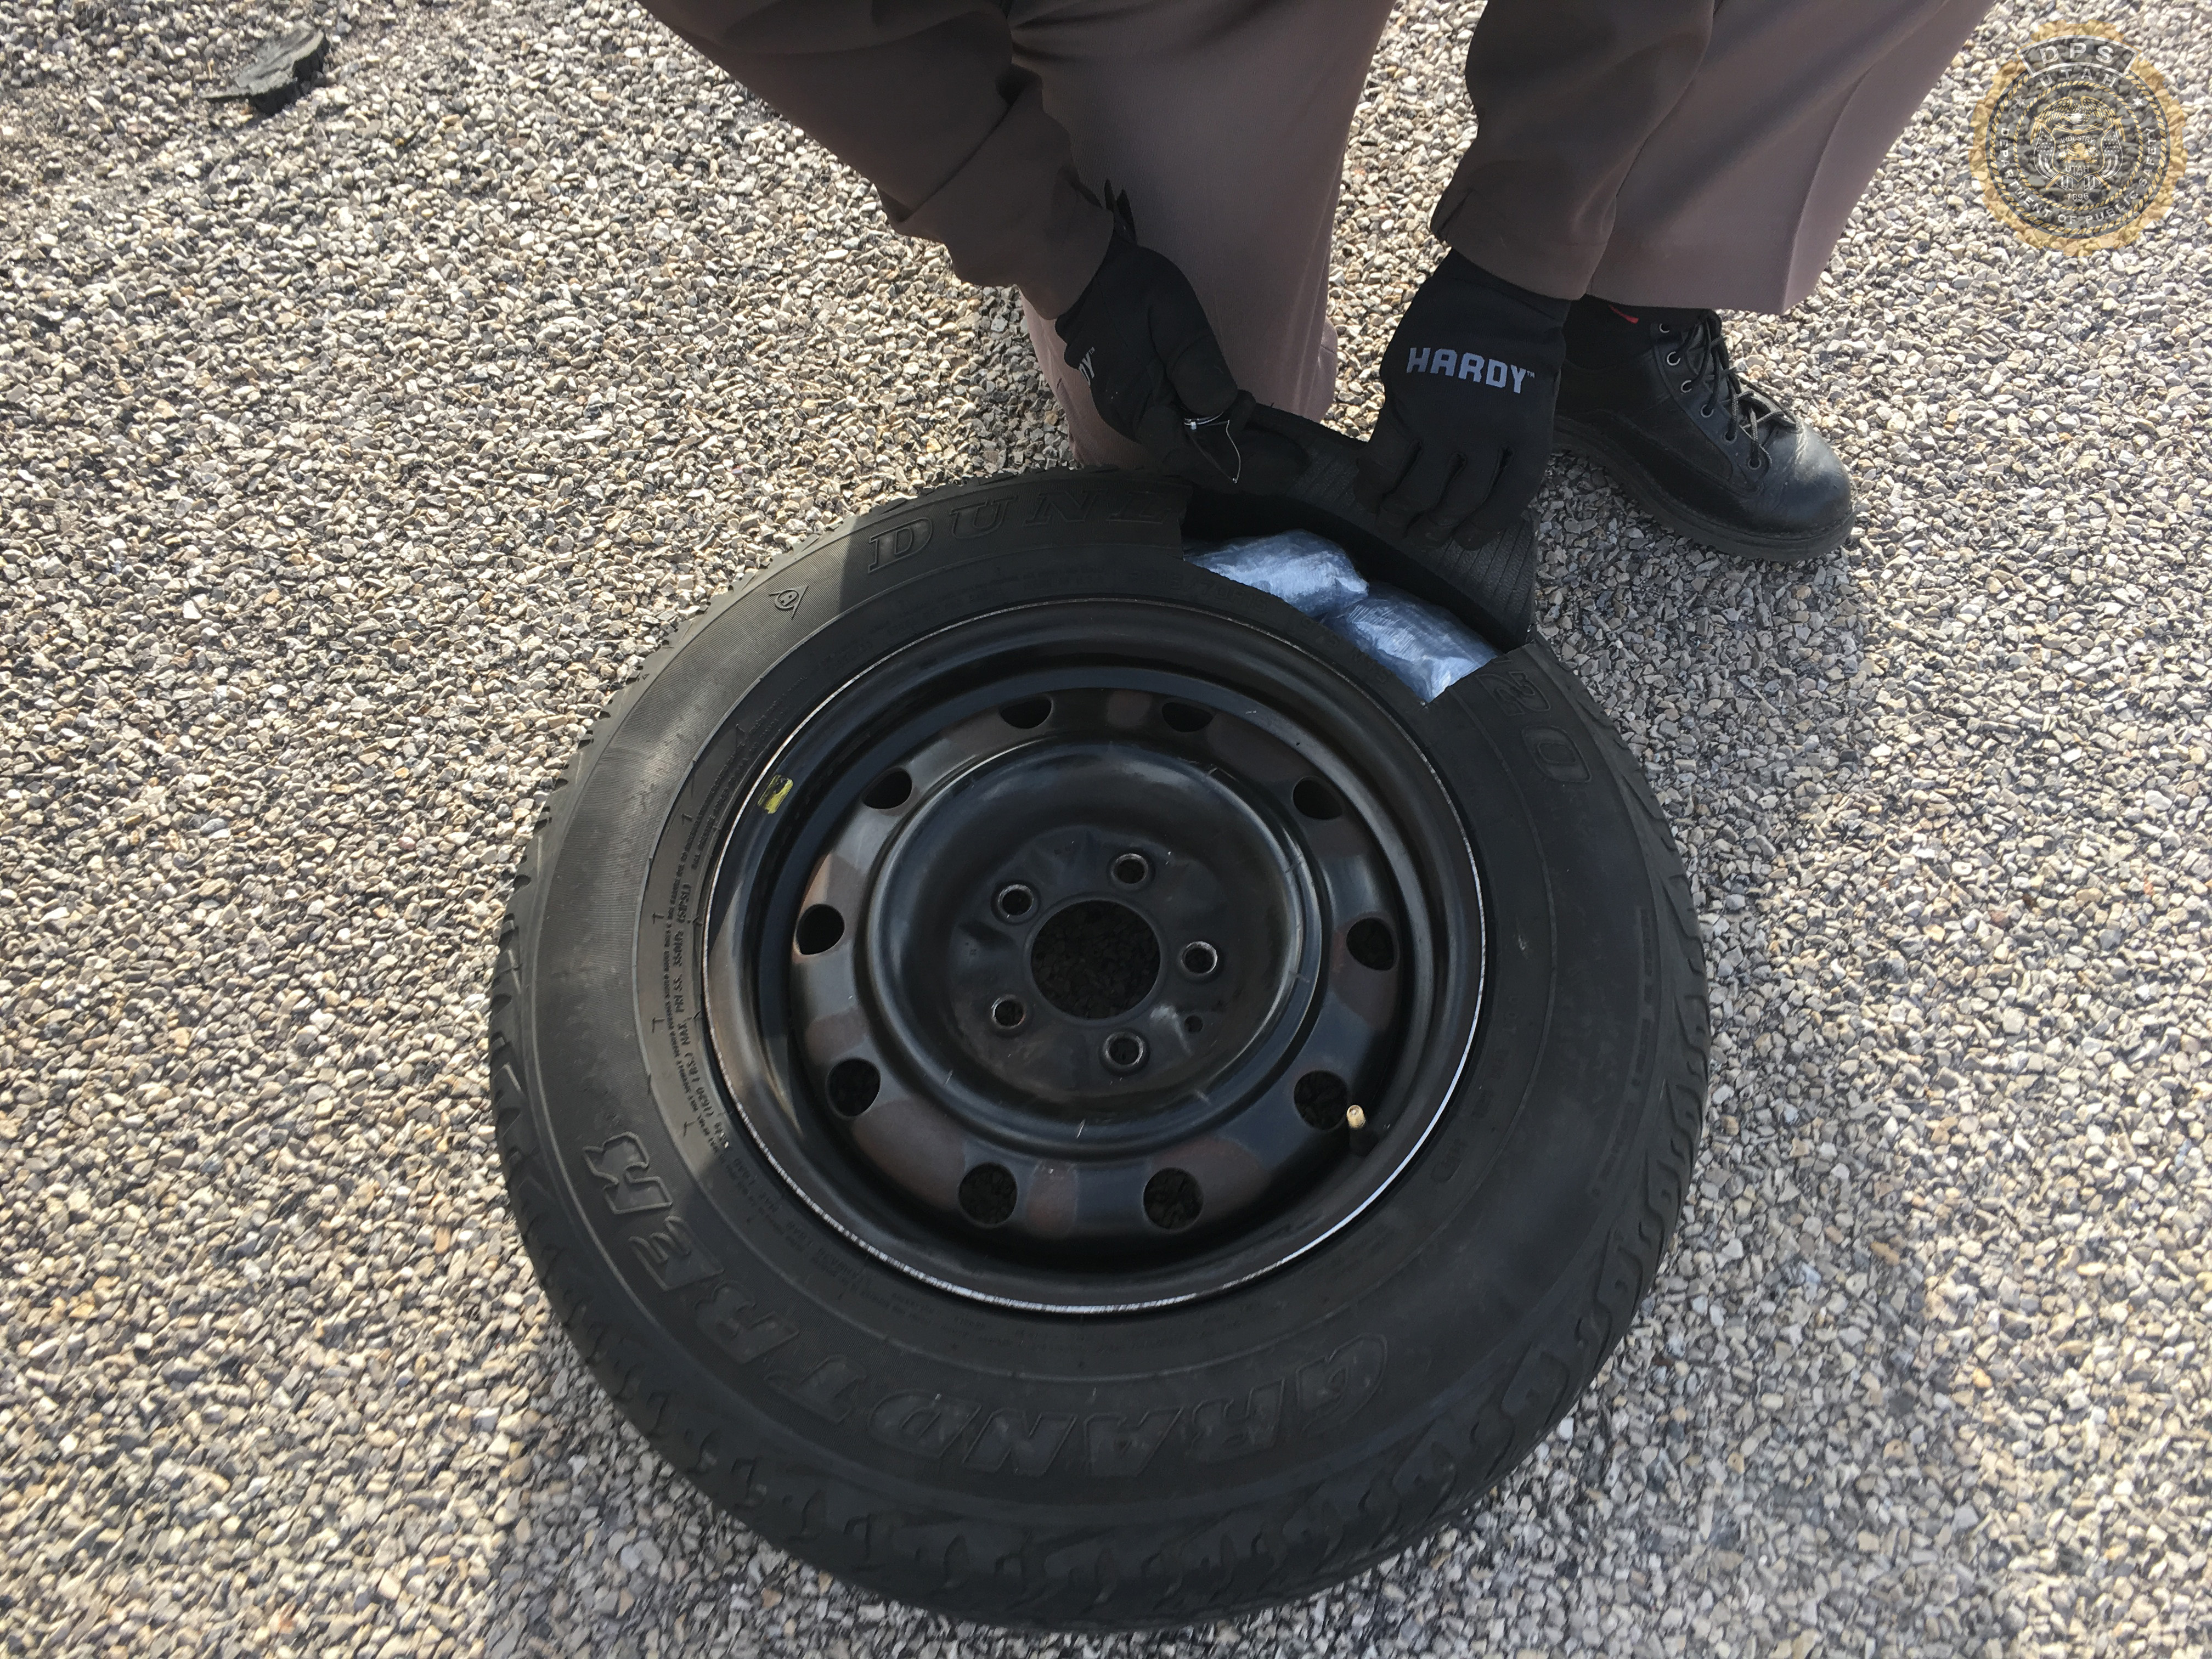 Trooper finds bags of drugs hidden in a spare tire